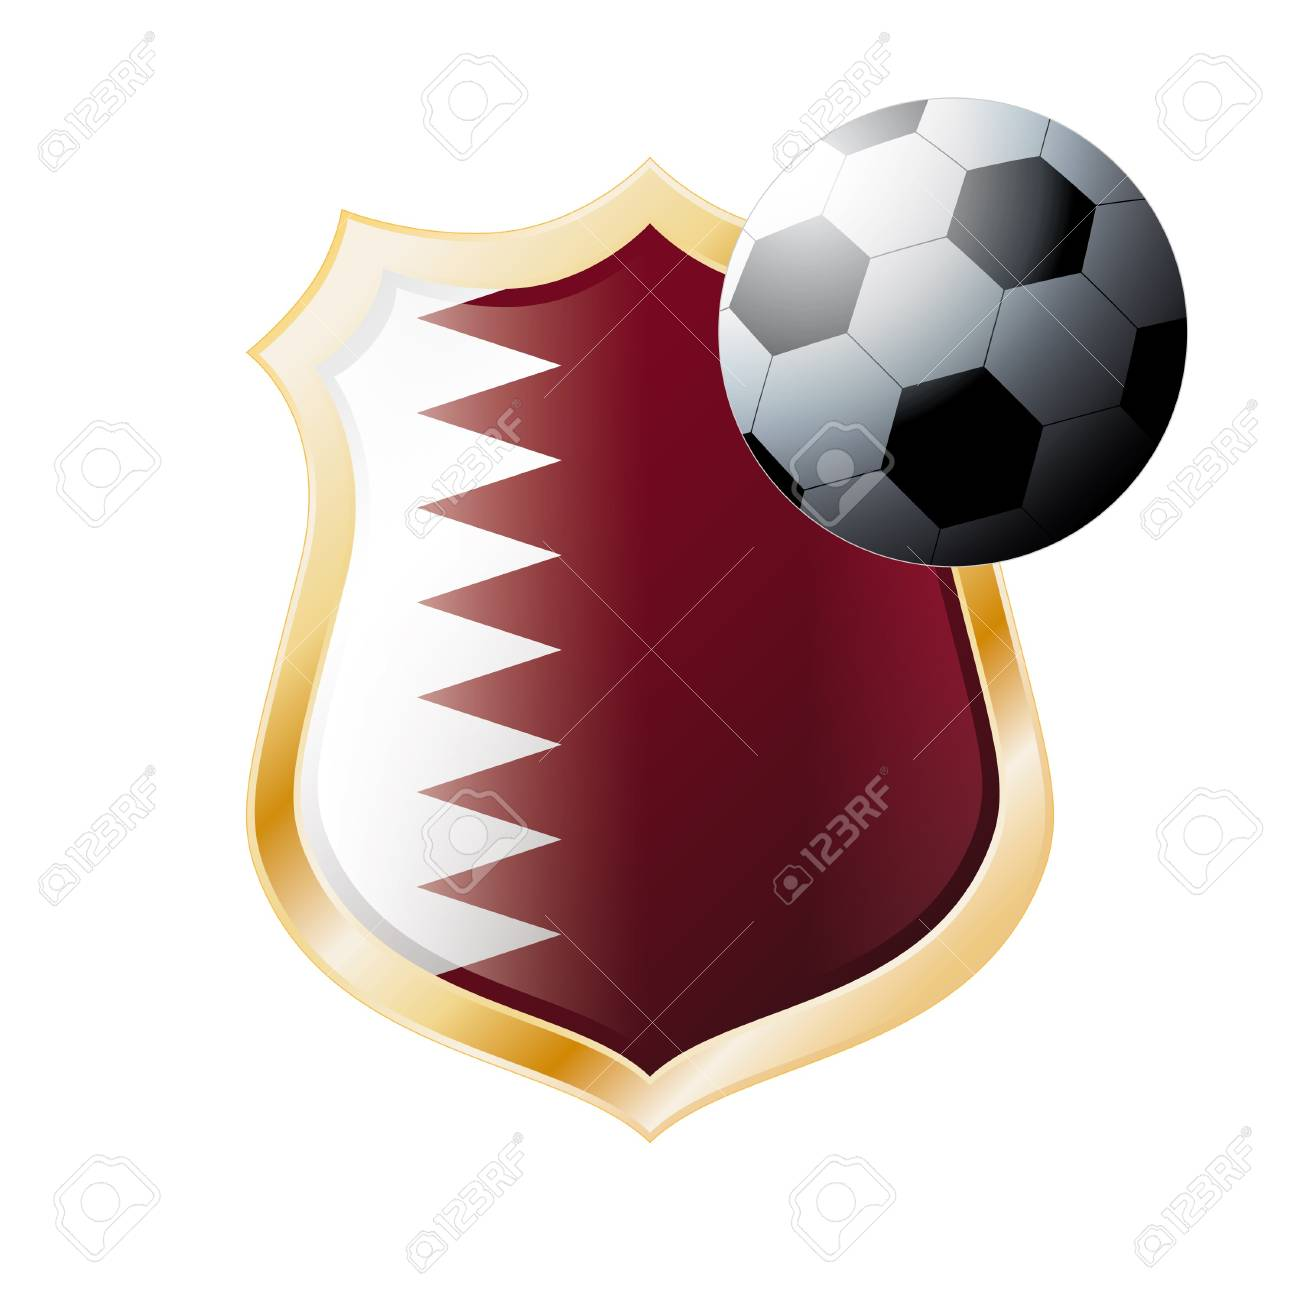 illustration - abstract soccer theme - shiny metal shield isolated on white background with flag of Qatar Stock Photo - 7117266